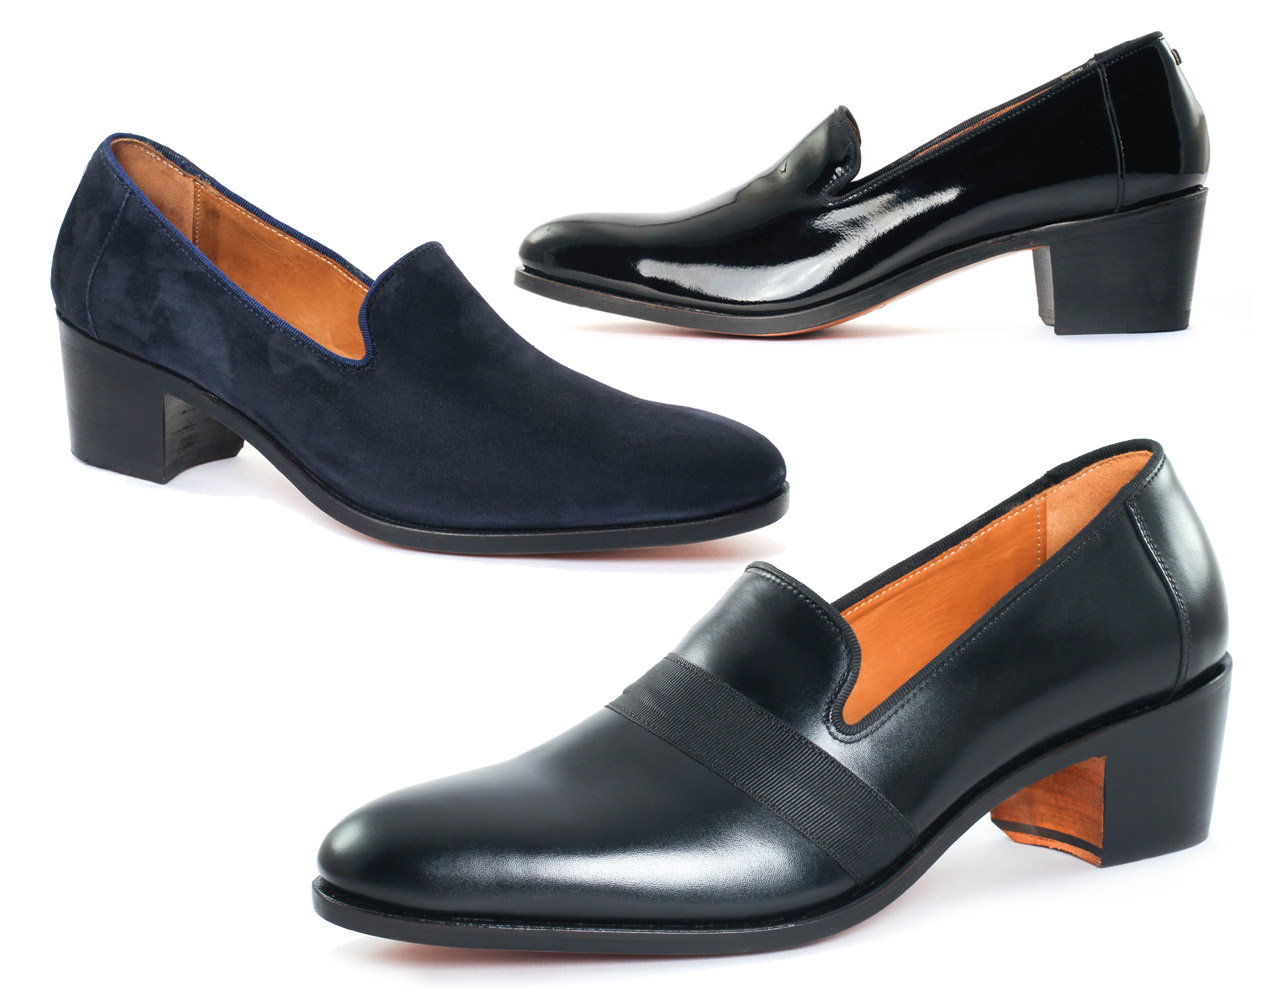 Shoes with high heel for men | LE NÔTRE Royal Navy | Black Patent | Calf Black